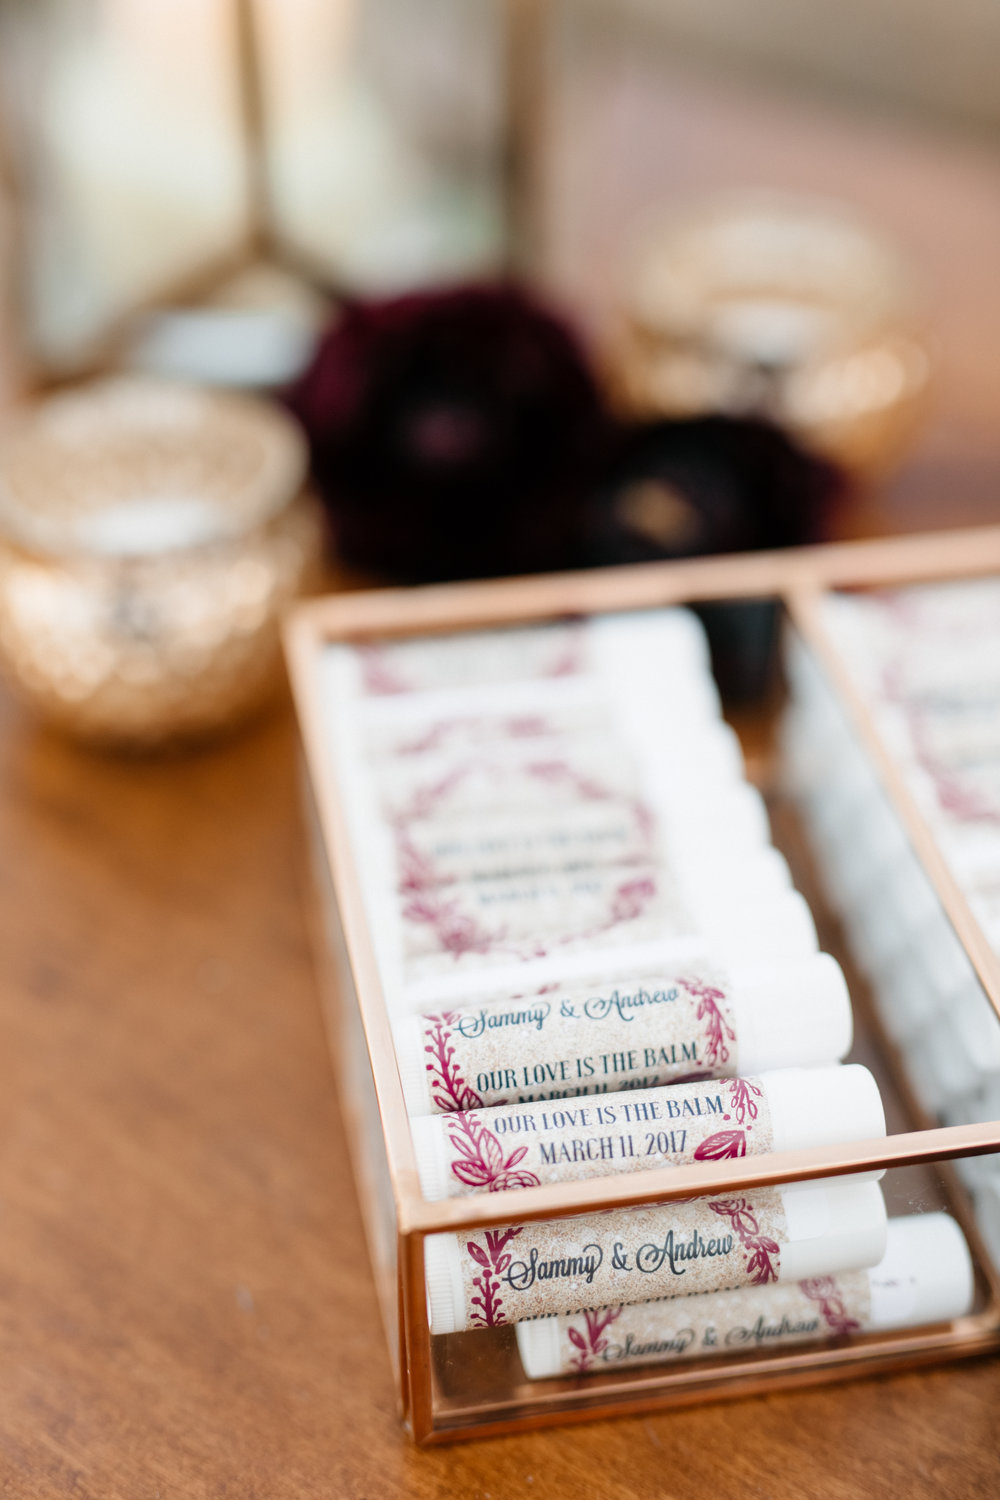 """Our love is the balm"" - Lip Balm for wedding guest takeaway"